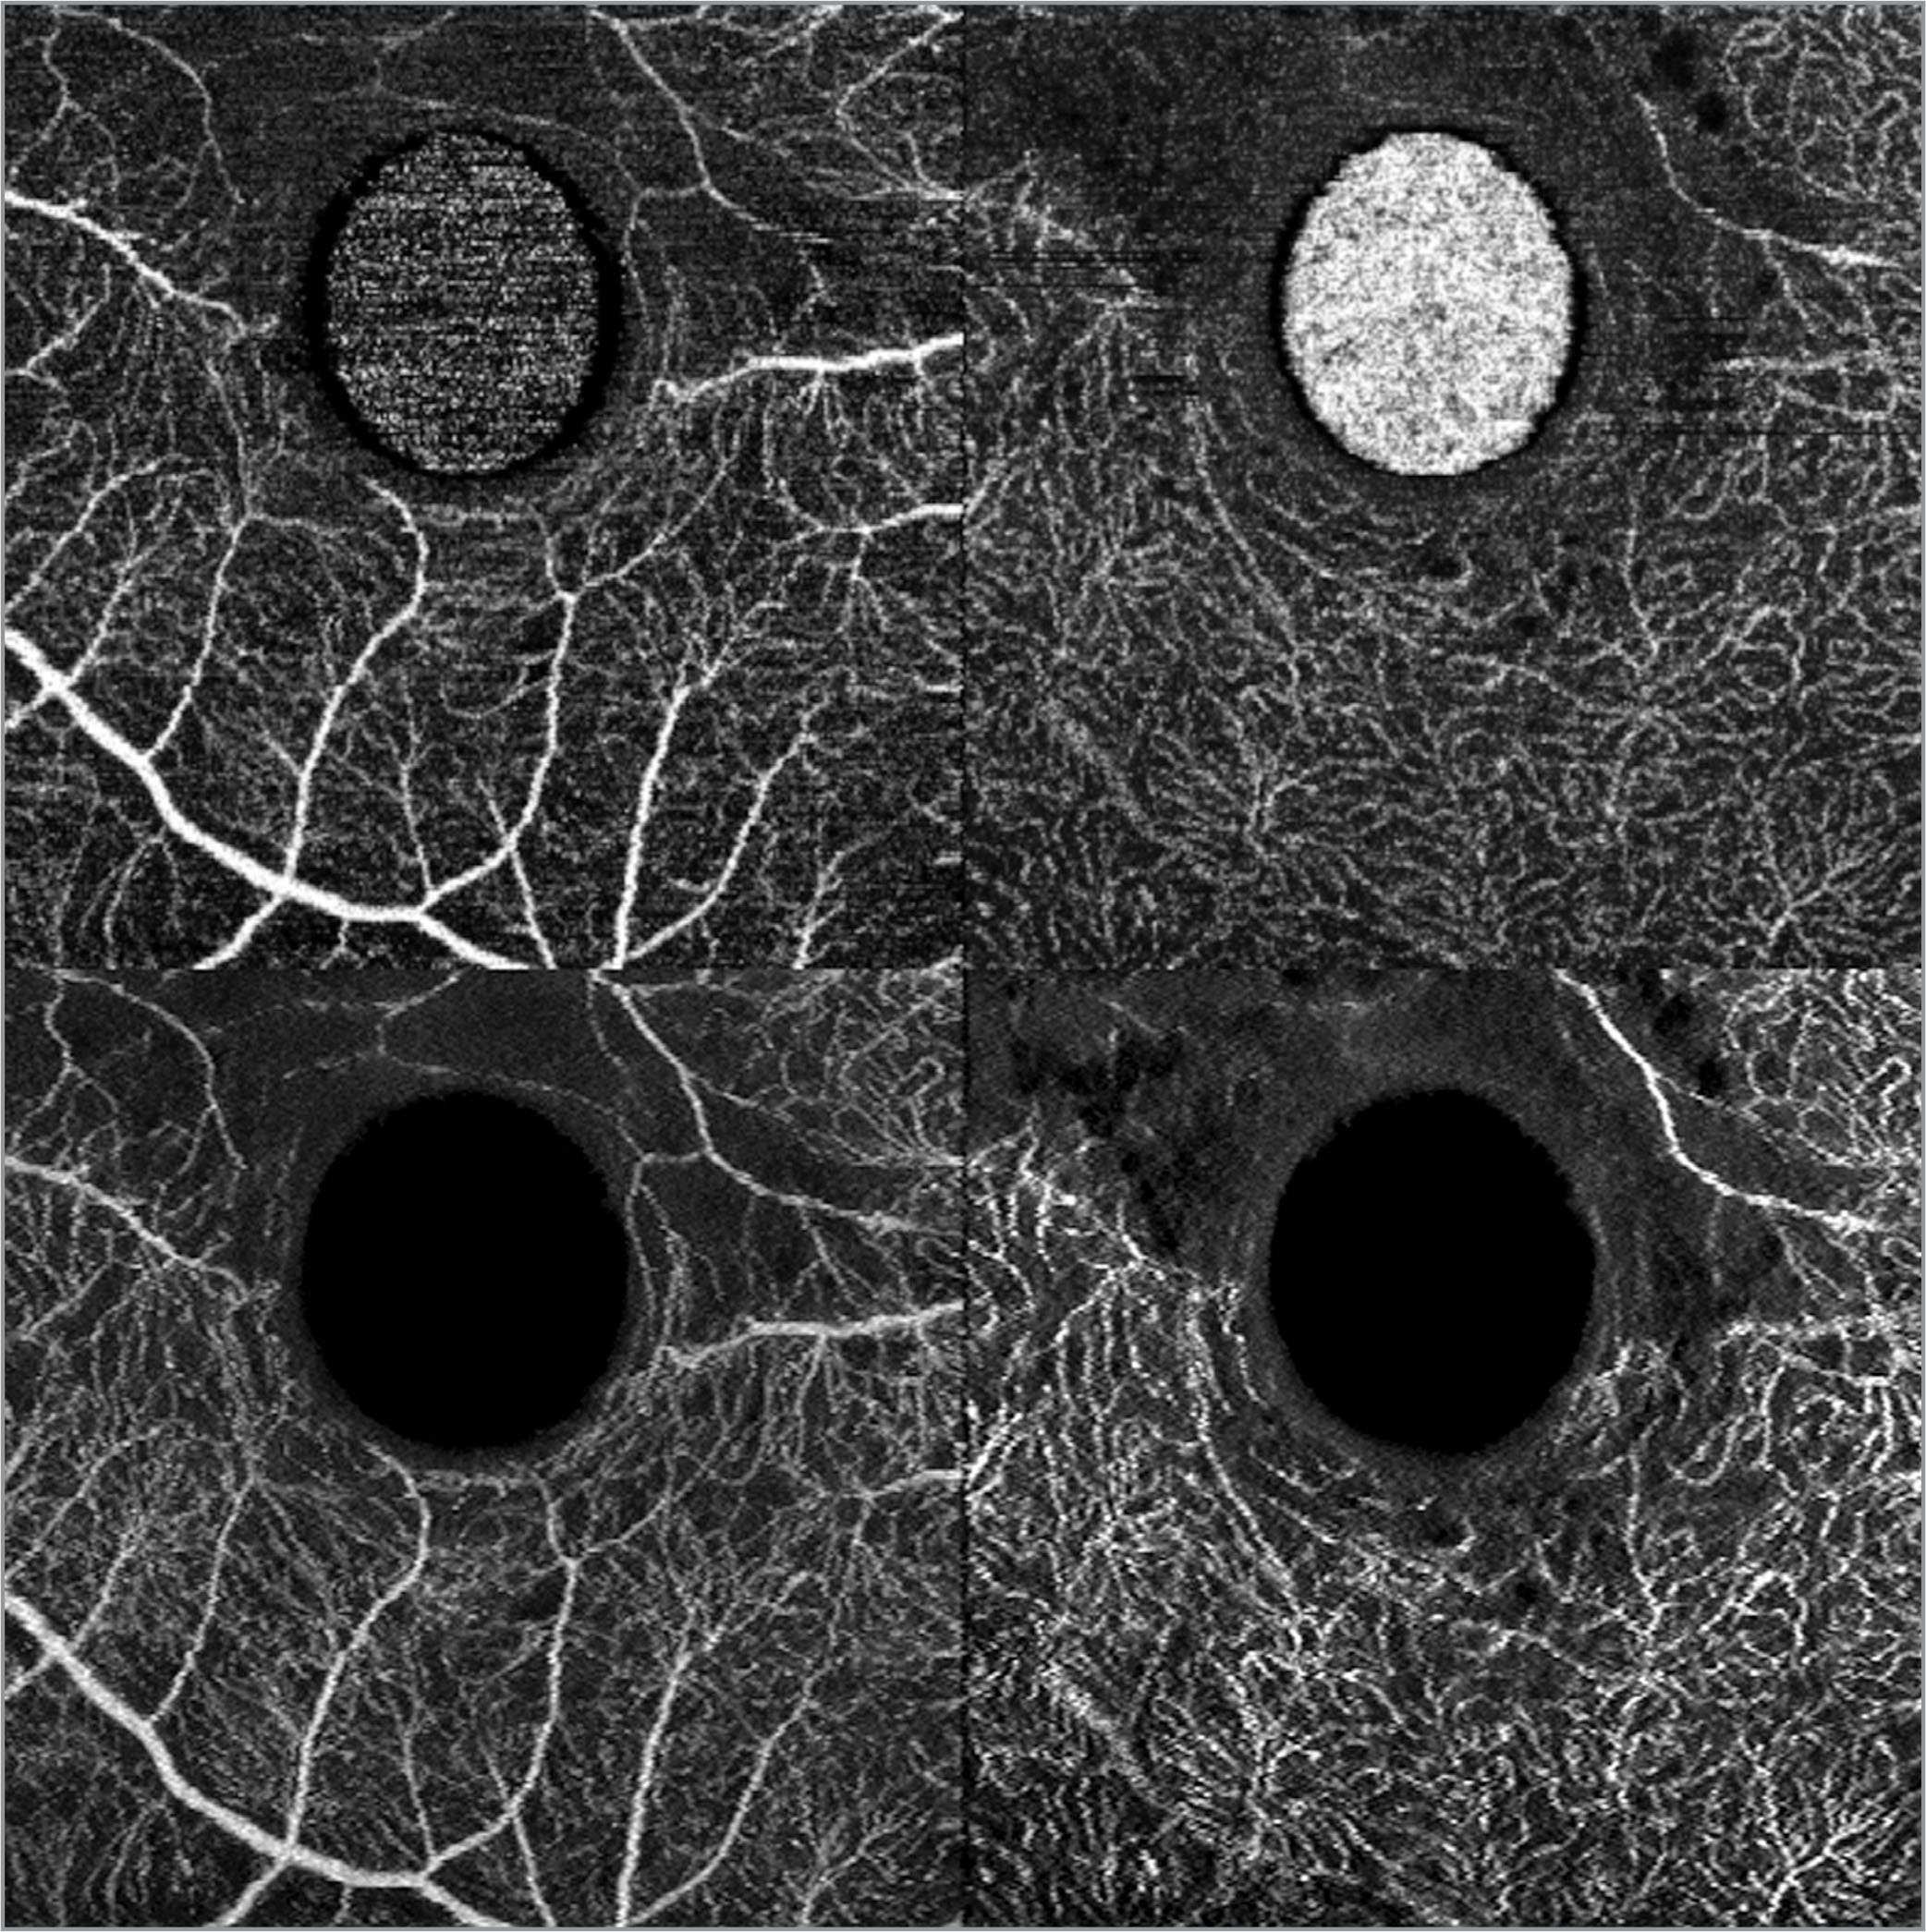 Swept-source optical coherence tomography angiography of full-thickness macular hole. Manual artifact removal. The upper images present a macular hole in superficial (left) and deep (right) retinal vessels. The oval hyperreflective shape in the middle is an artifact. The lower pictures were transformed with temporal and de-flickering noise reduction algorithms and plugins in Adobe After Effects in order to remove the central artifact. We noted areas of decreased perfusion on the upper margin of the macular hole. These probably correspond to retinal edema around the macular hole.